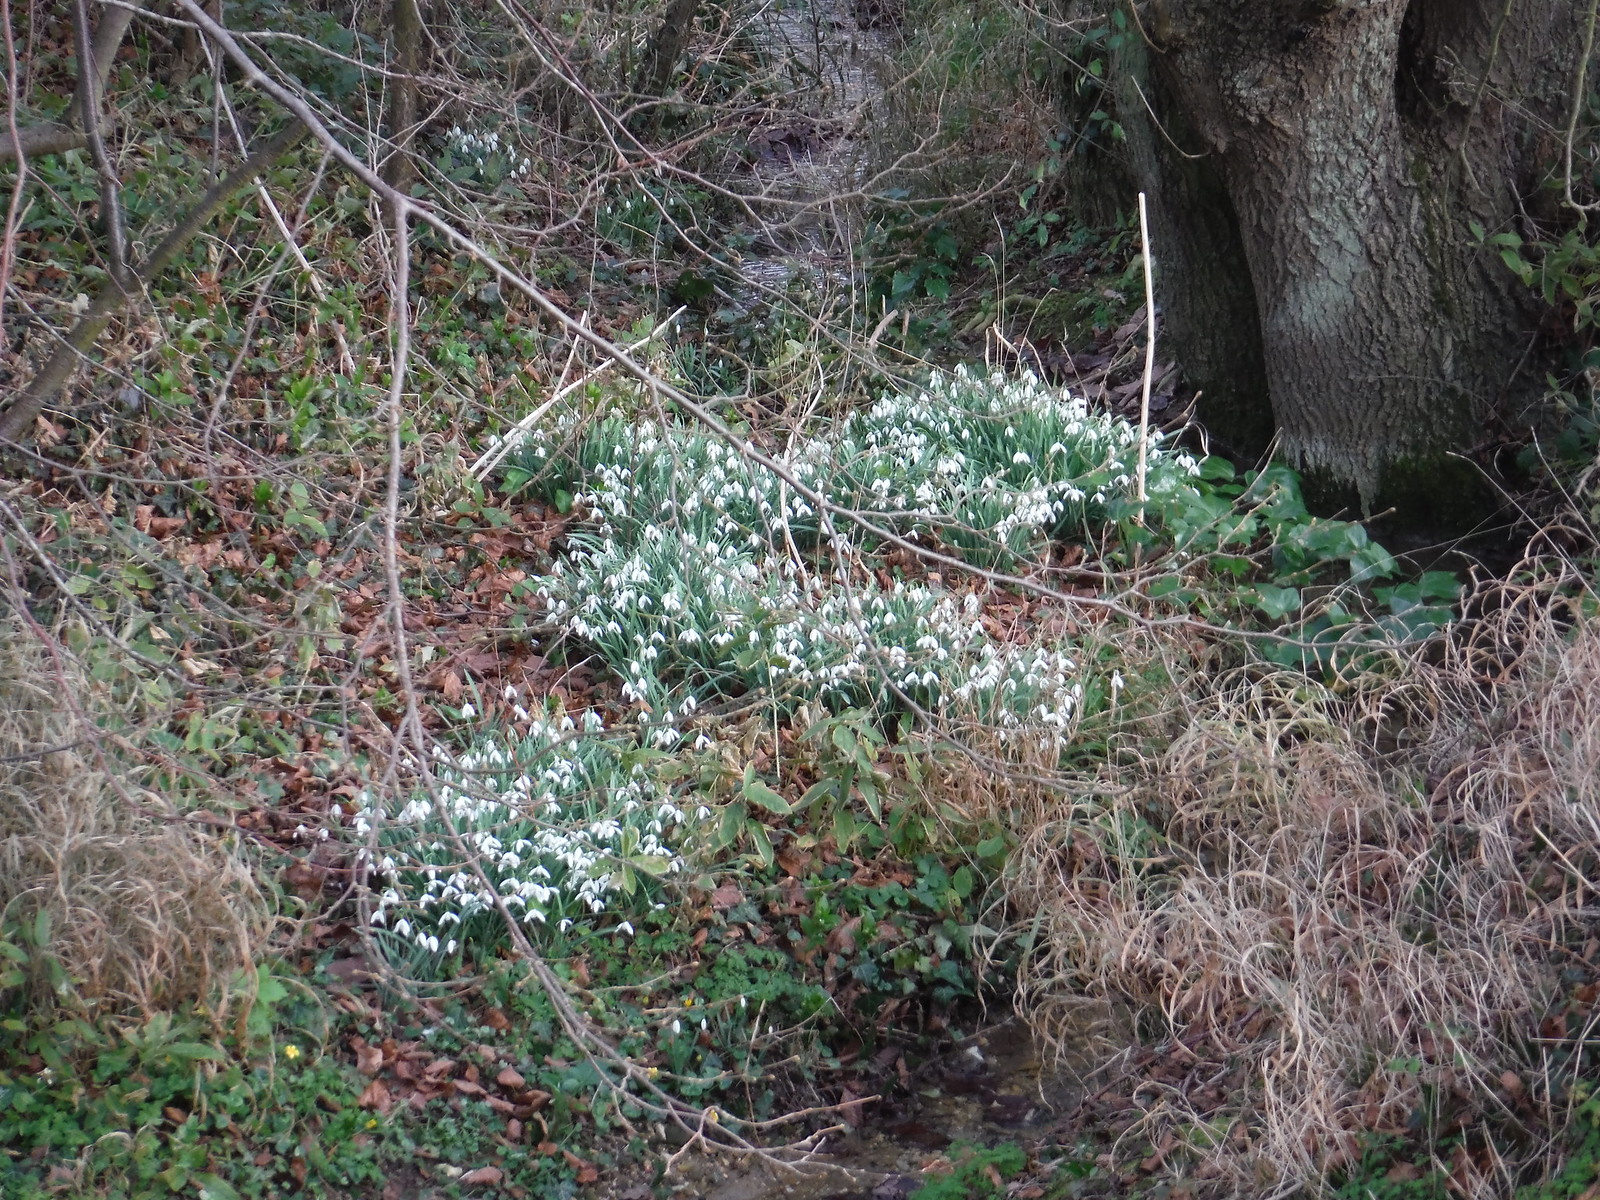 Snowdrops SWC Walk 116 Wendens Ambo [Audley End station] Circular